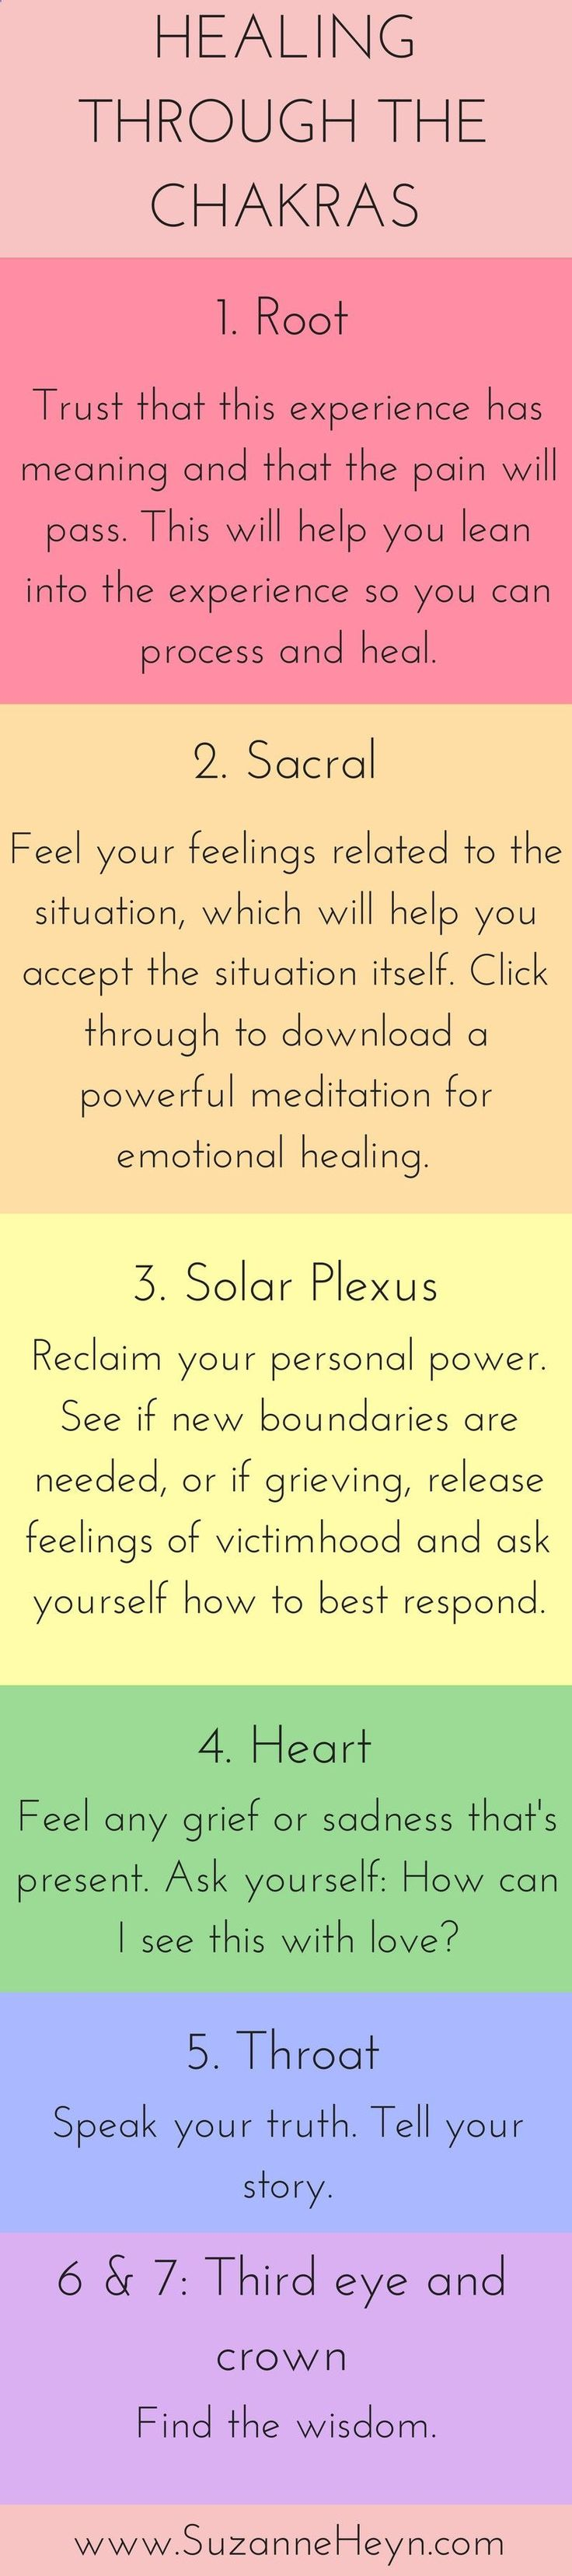 Click through for a powerful free meditation for emotional healing. Discover how to heal through the chakras. Spiritual seekers looking to heal depression, anxiety, grief and more will benefit from this inspirational healing tool for peace, happiness and joy. #mediationfordepression